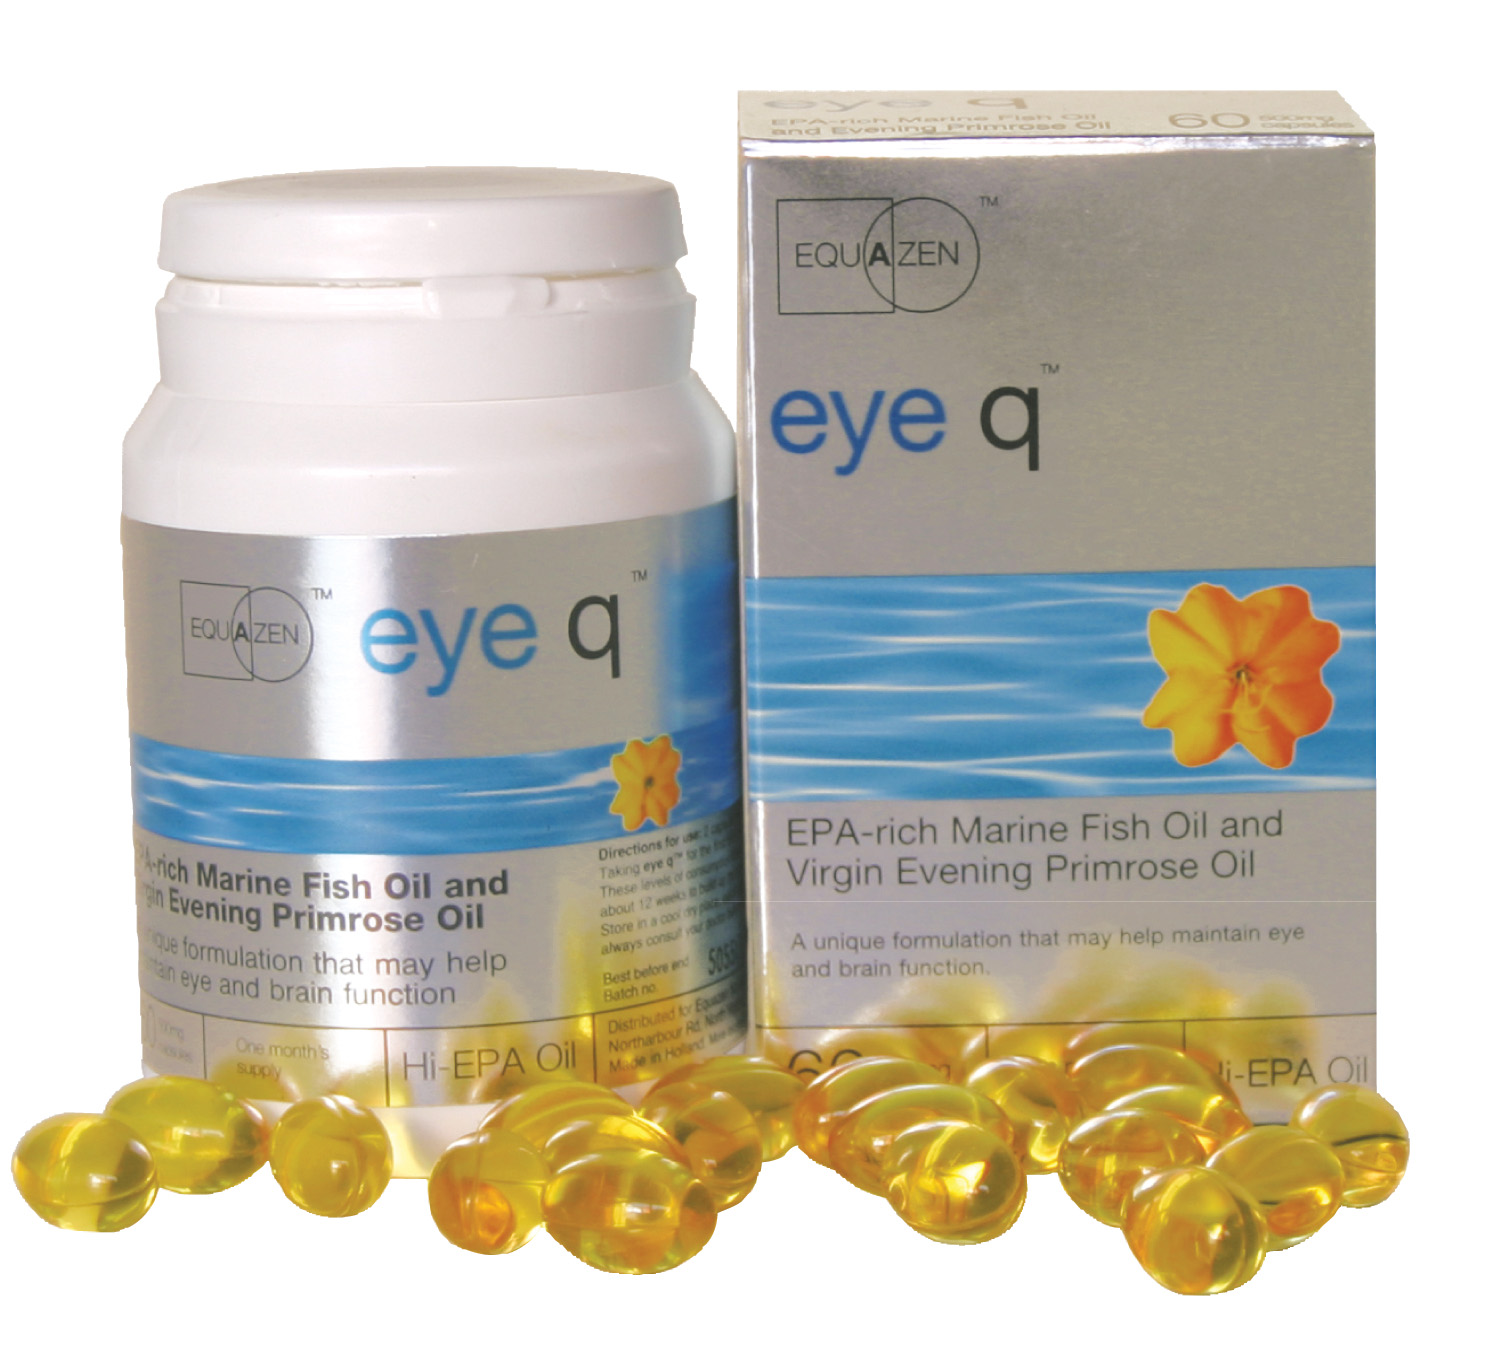 Freebees PR & Marketing: eye-q - FISH OIL BOOSTS PERFORMANCE OF ATHLETES